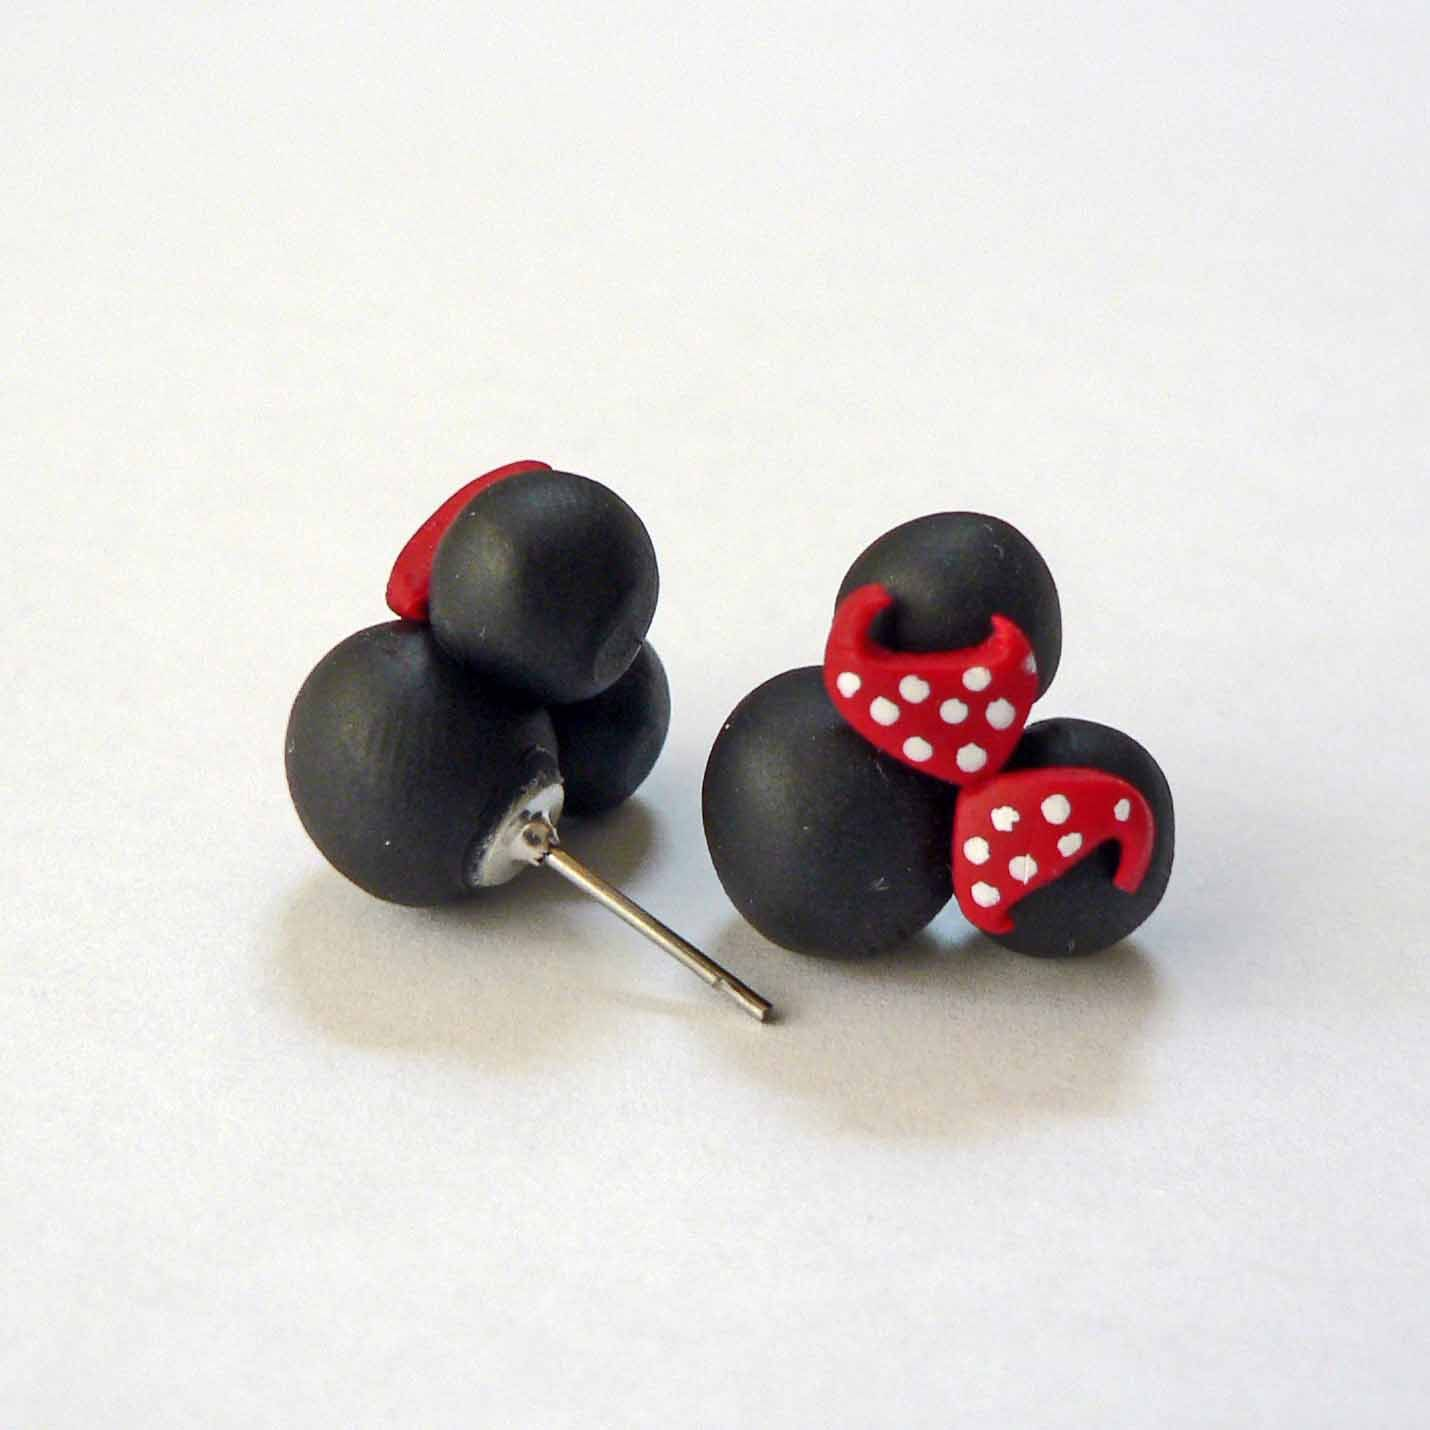 Black Ear Mini Mouse Earrings With Polka Dot Bow Made On Hypoallergenic  Surgical Steel Posts Red Polka Dot Bow Mini Ears